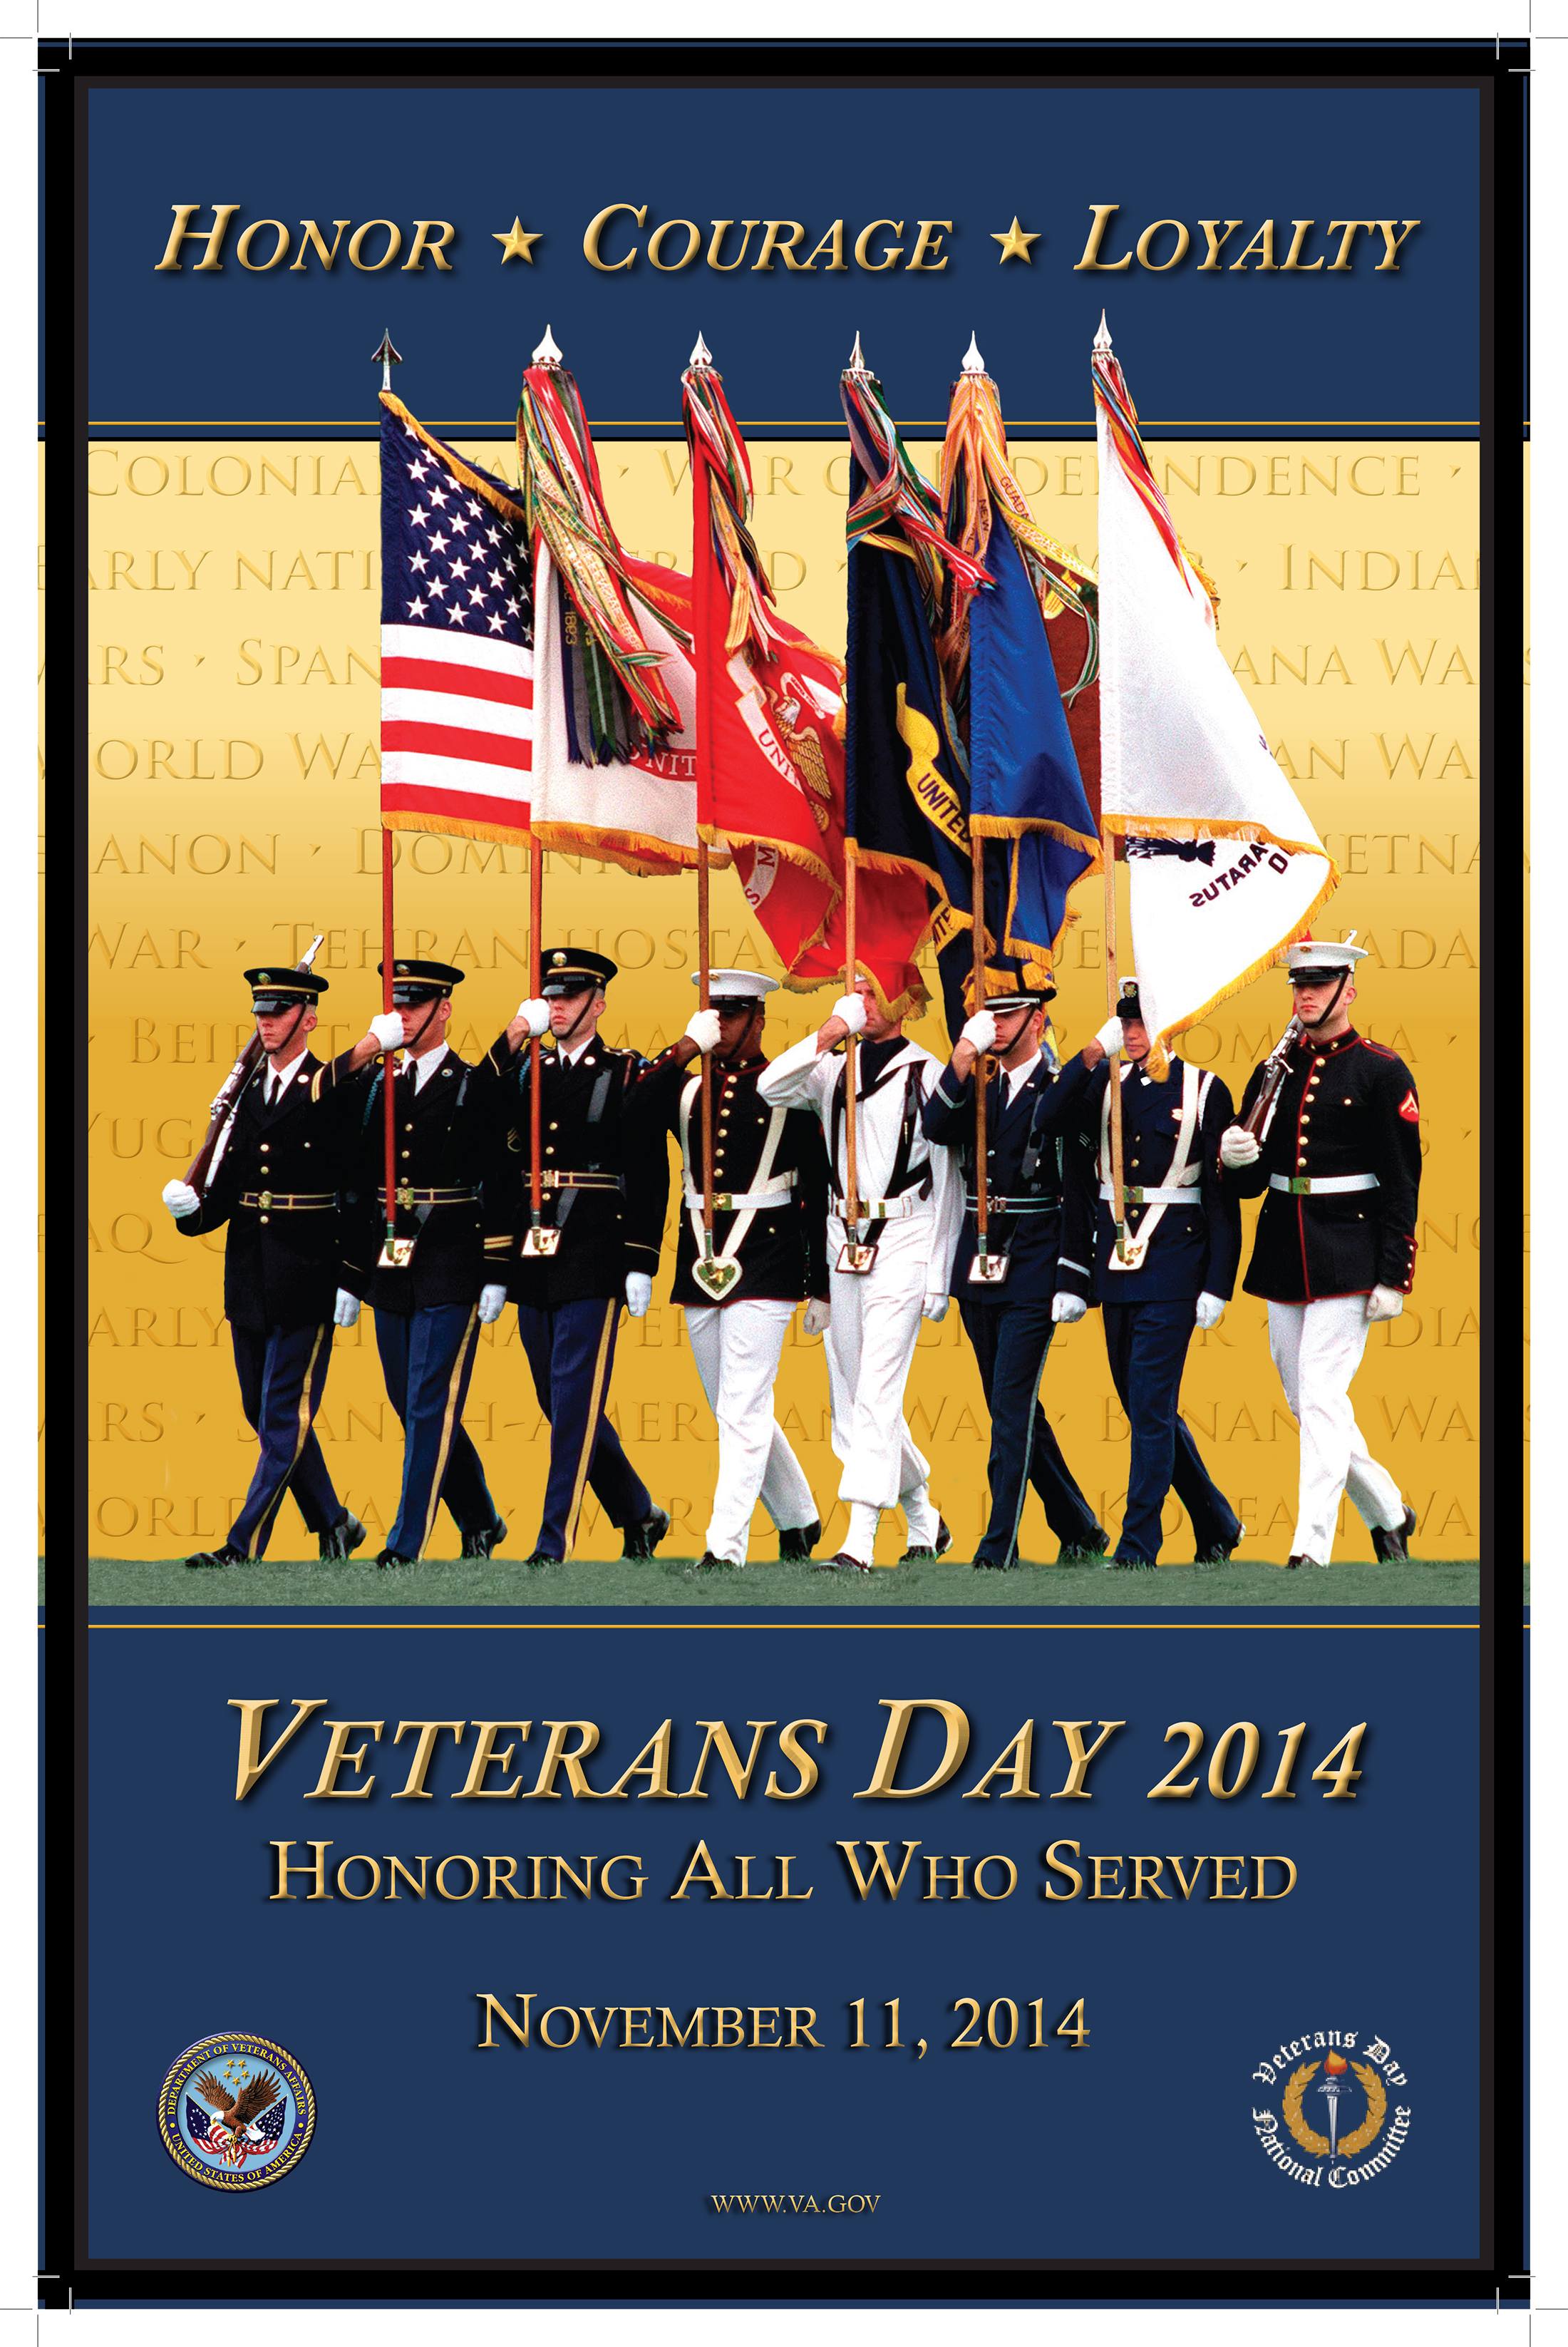 Veterans day 2014 clipart image library Veterans Day Poster Gallery - Office of Public and ... image library